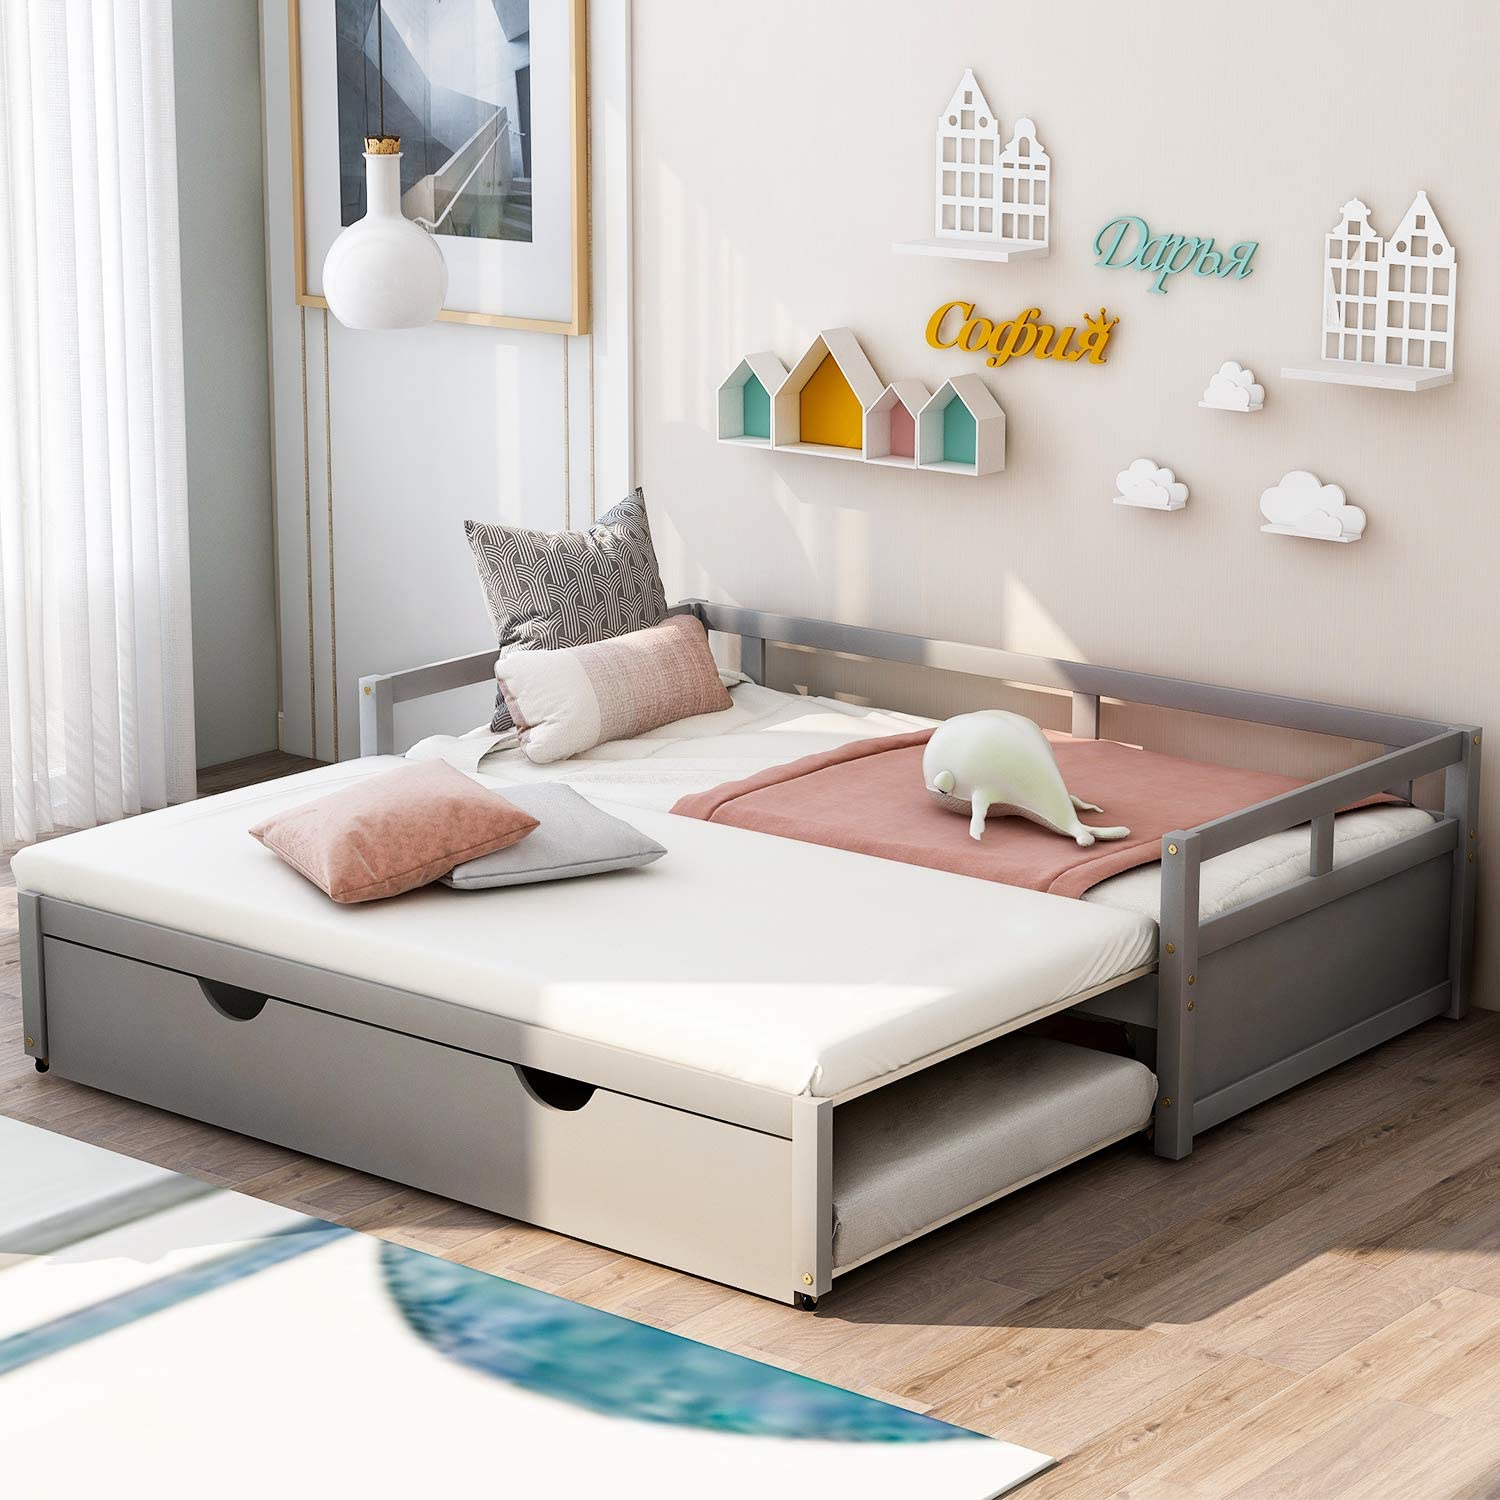 Merax Wooden Extendable Bed, Twin to King Daybed Frame for Bedroom Living Room, No Box Spring Needed, Trundle, Gray